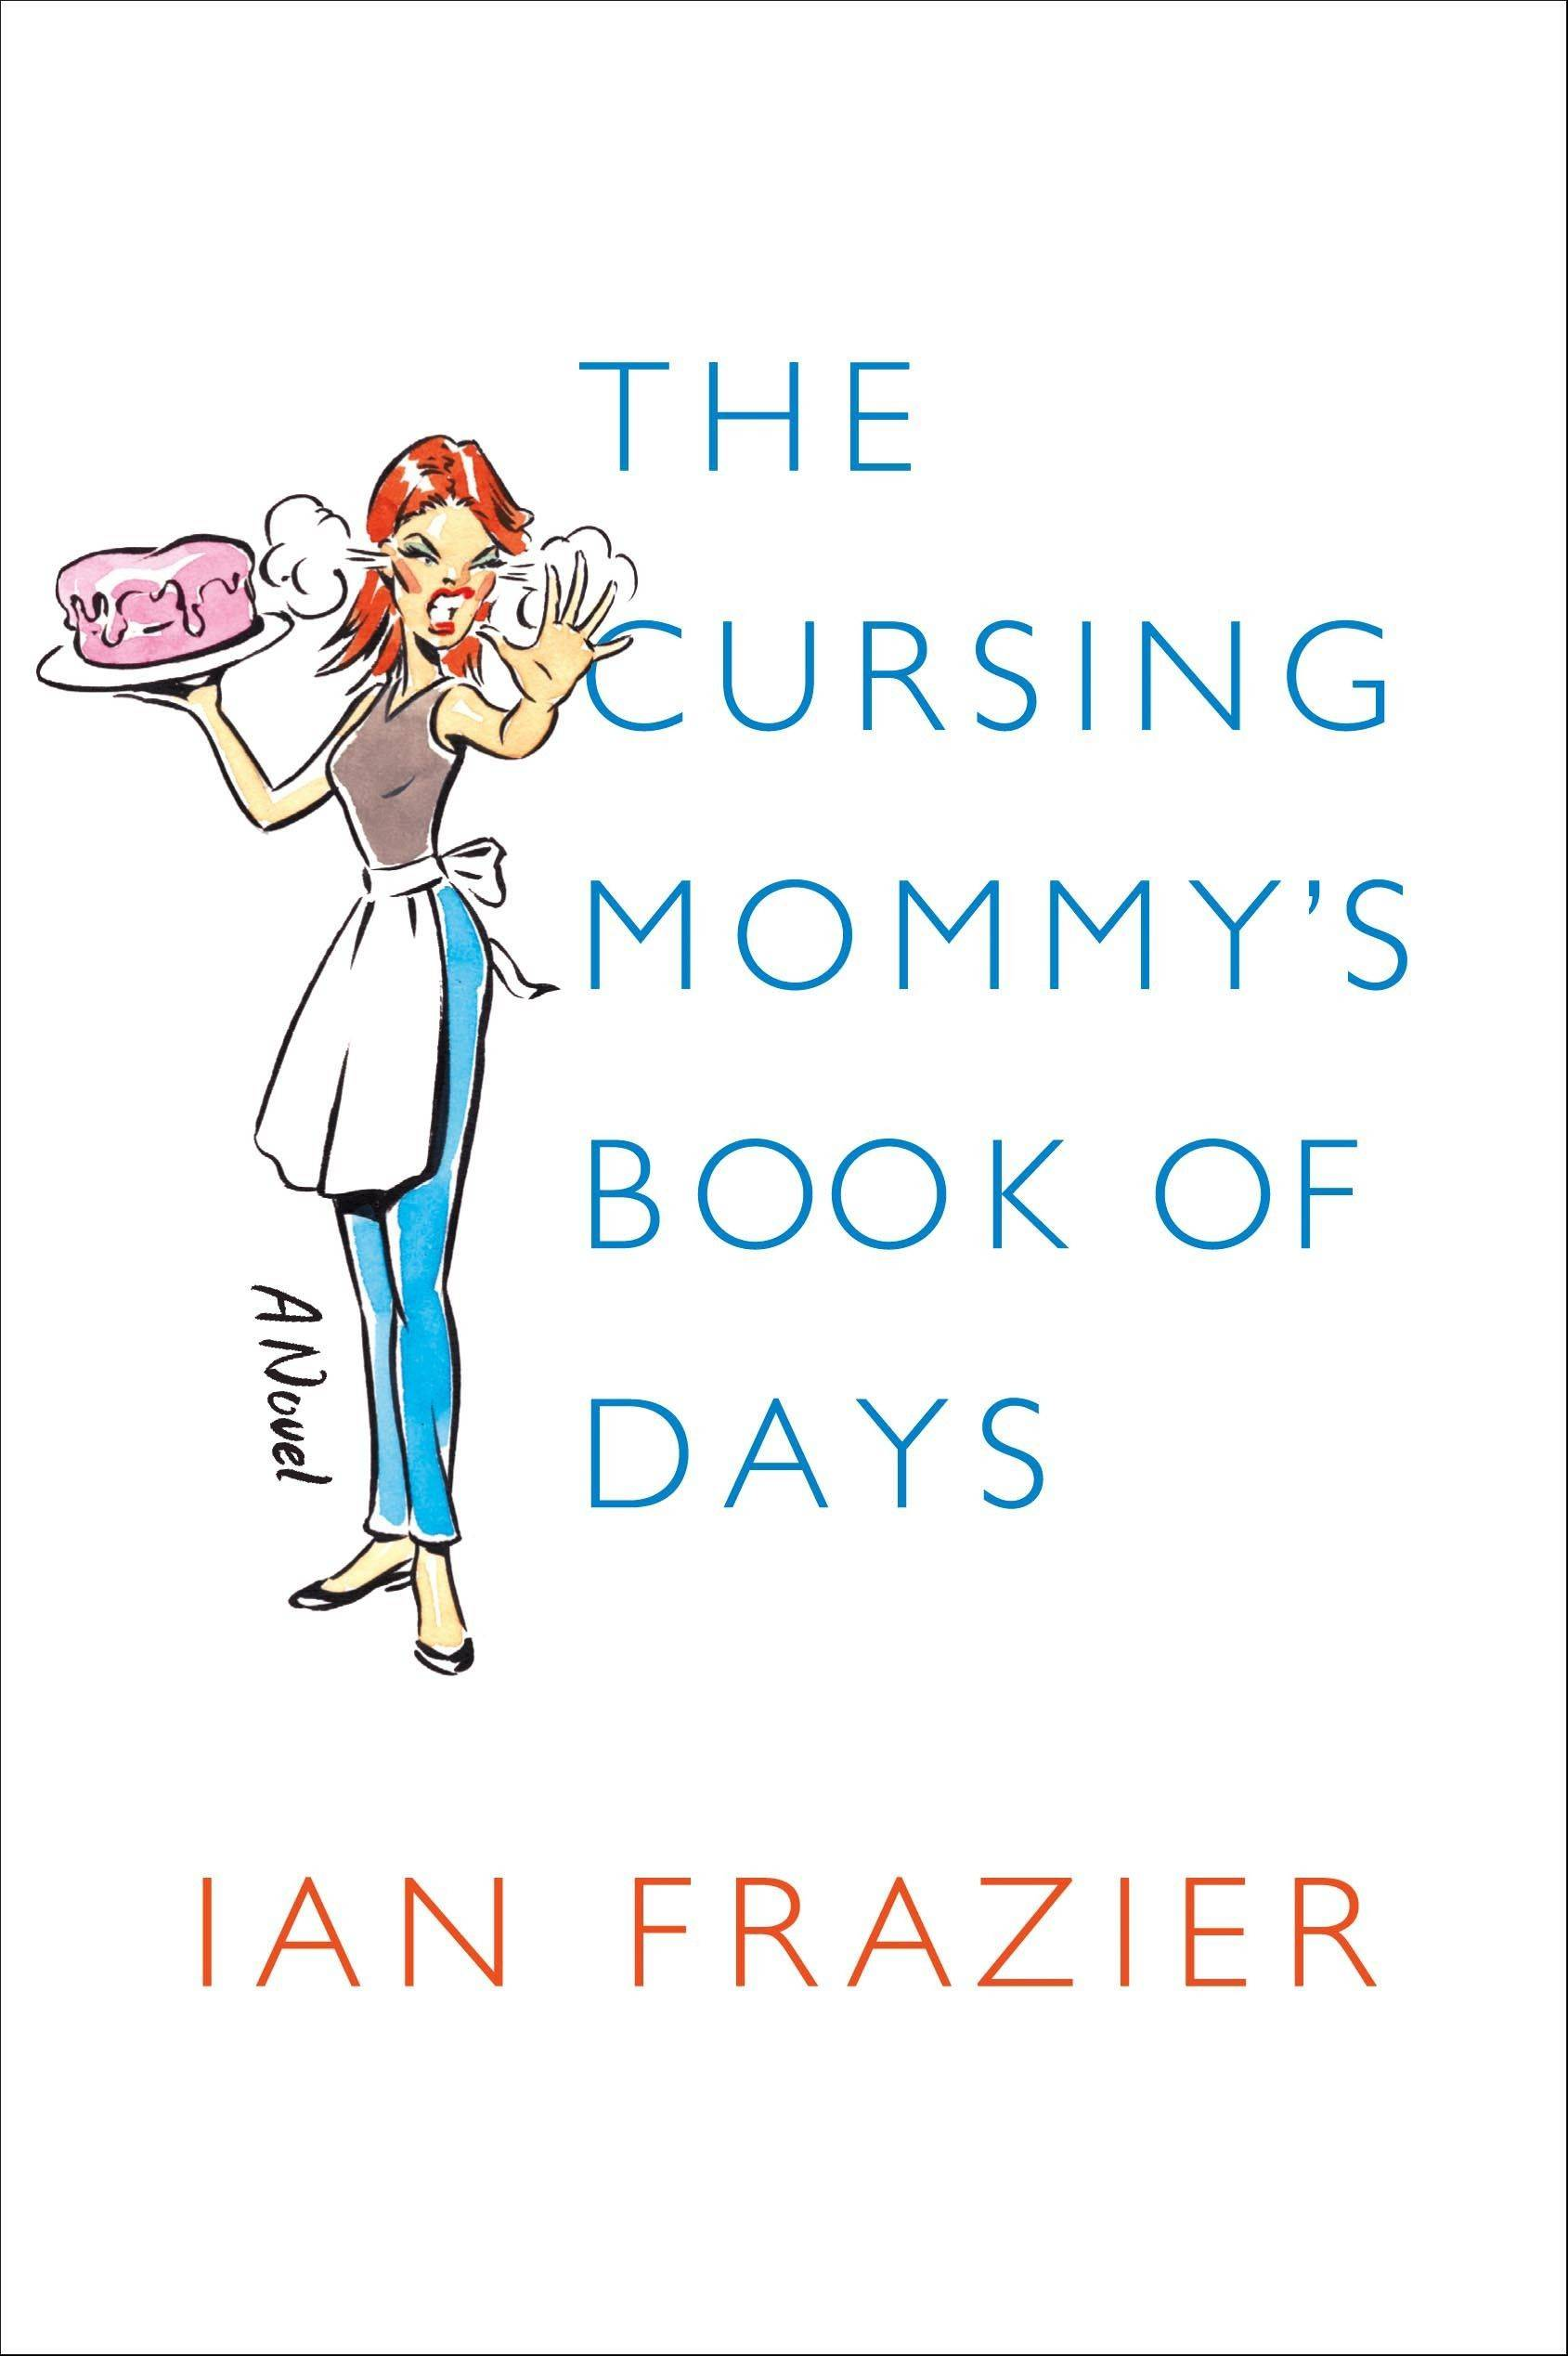 """The Cursing Mommy's Book of Days"" by Ian Frazier"